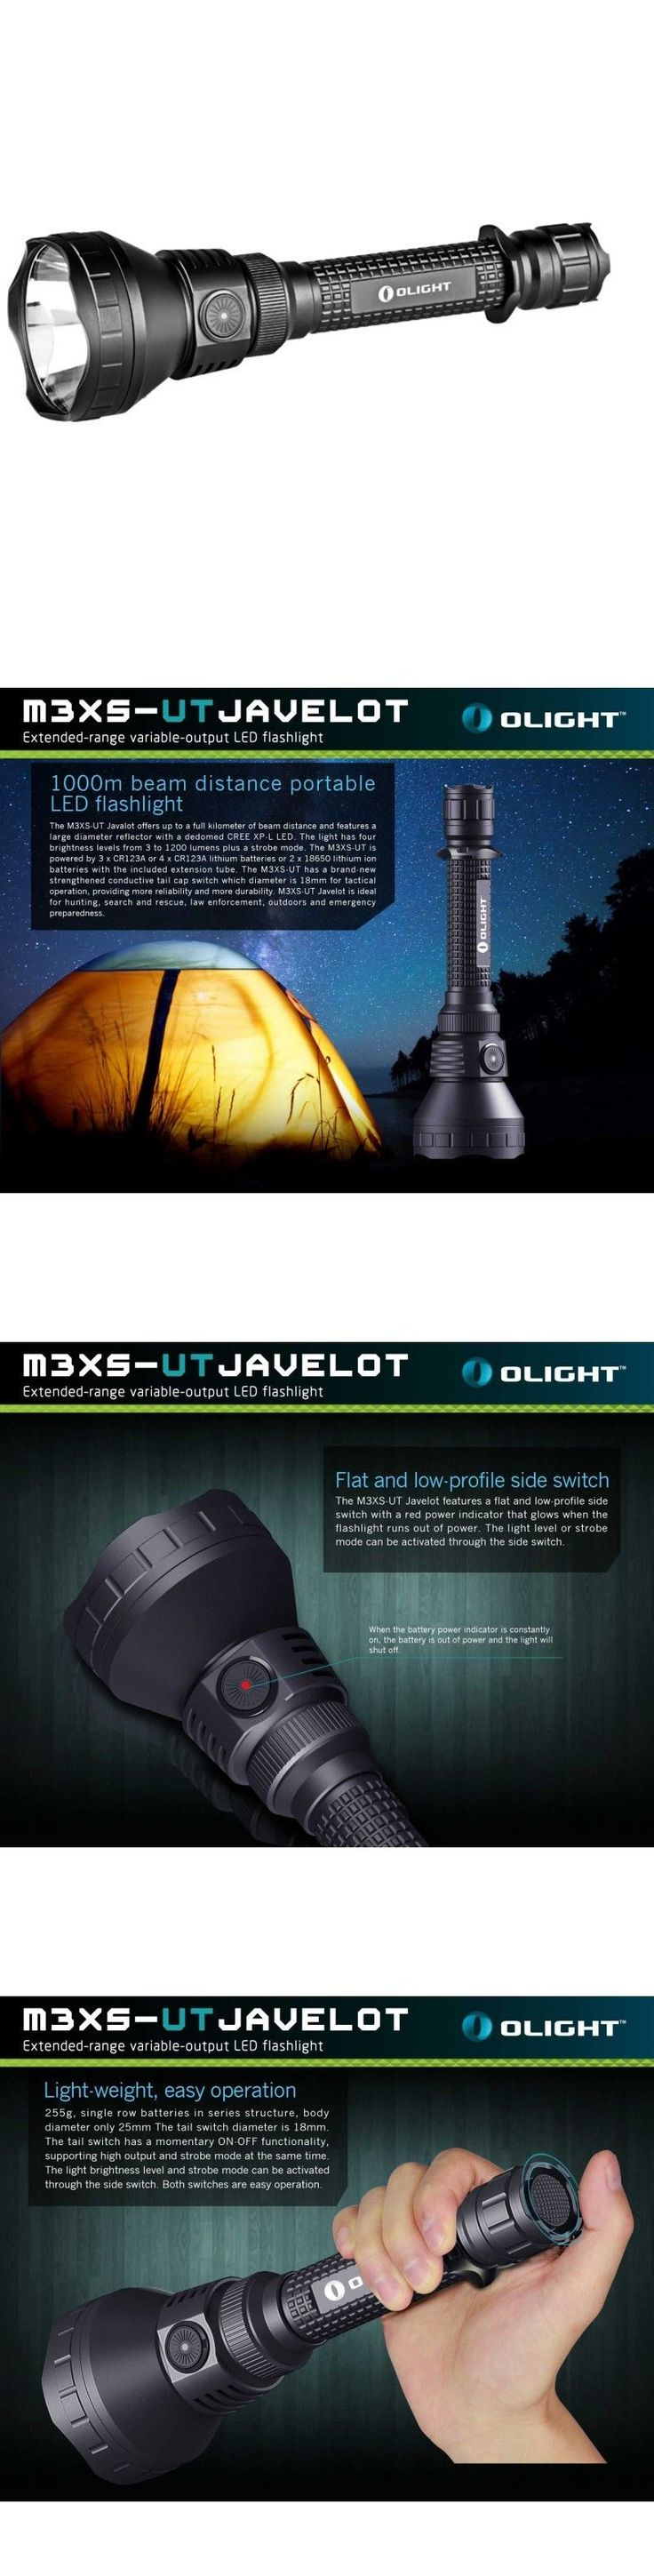 Flashlights 16037: Olight M3xs Ut Javelot Cree Xp-L 1200 Lumen Led Flashlight- Dual Switch Design -> BUY IT NOW ONLY: $149.95 on eBay!